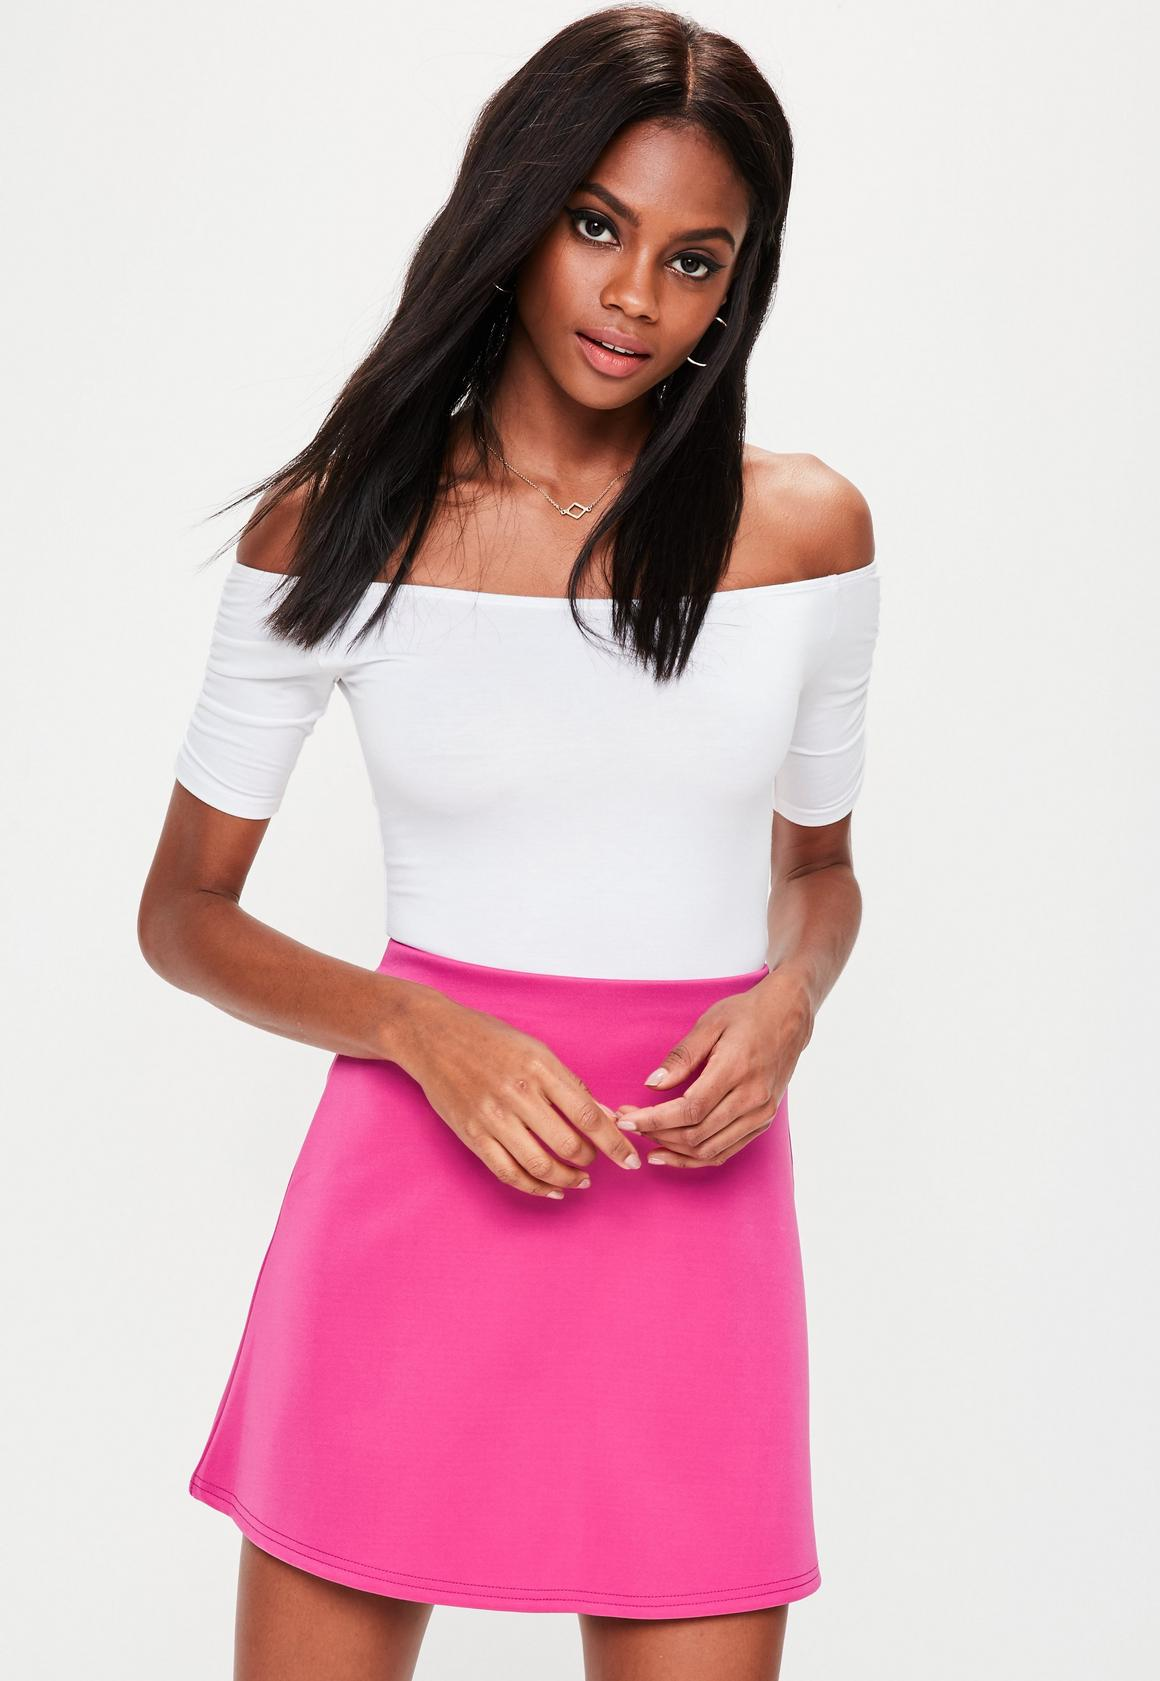 A-Line Skirts - Women's A-Line Skirts Online | Missguided